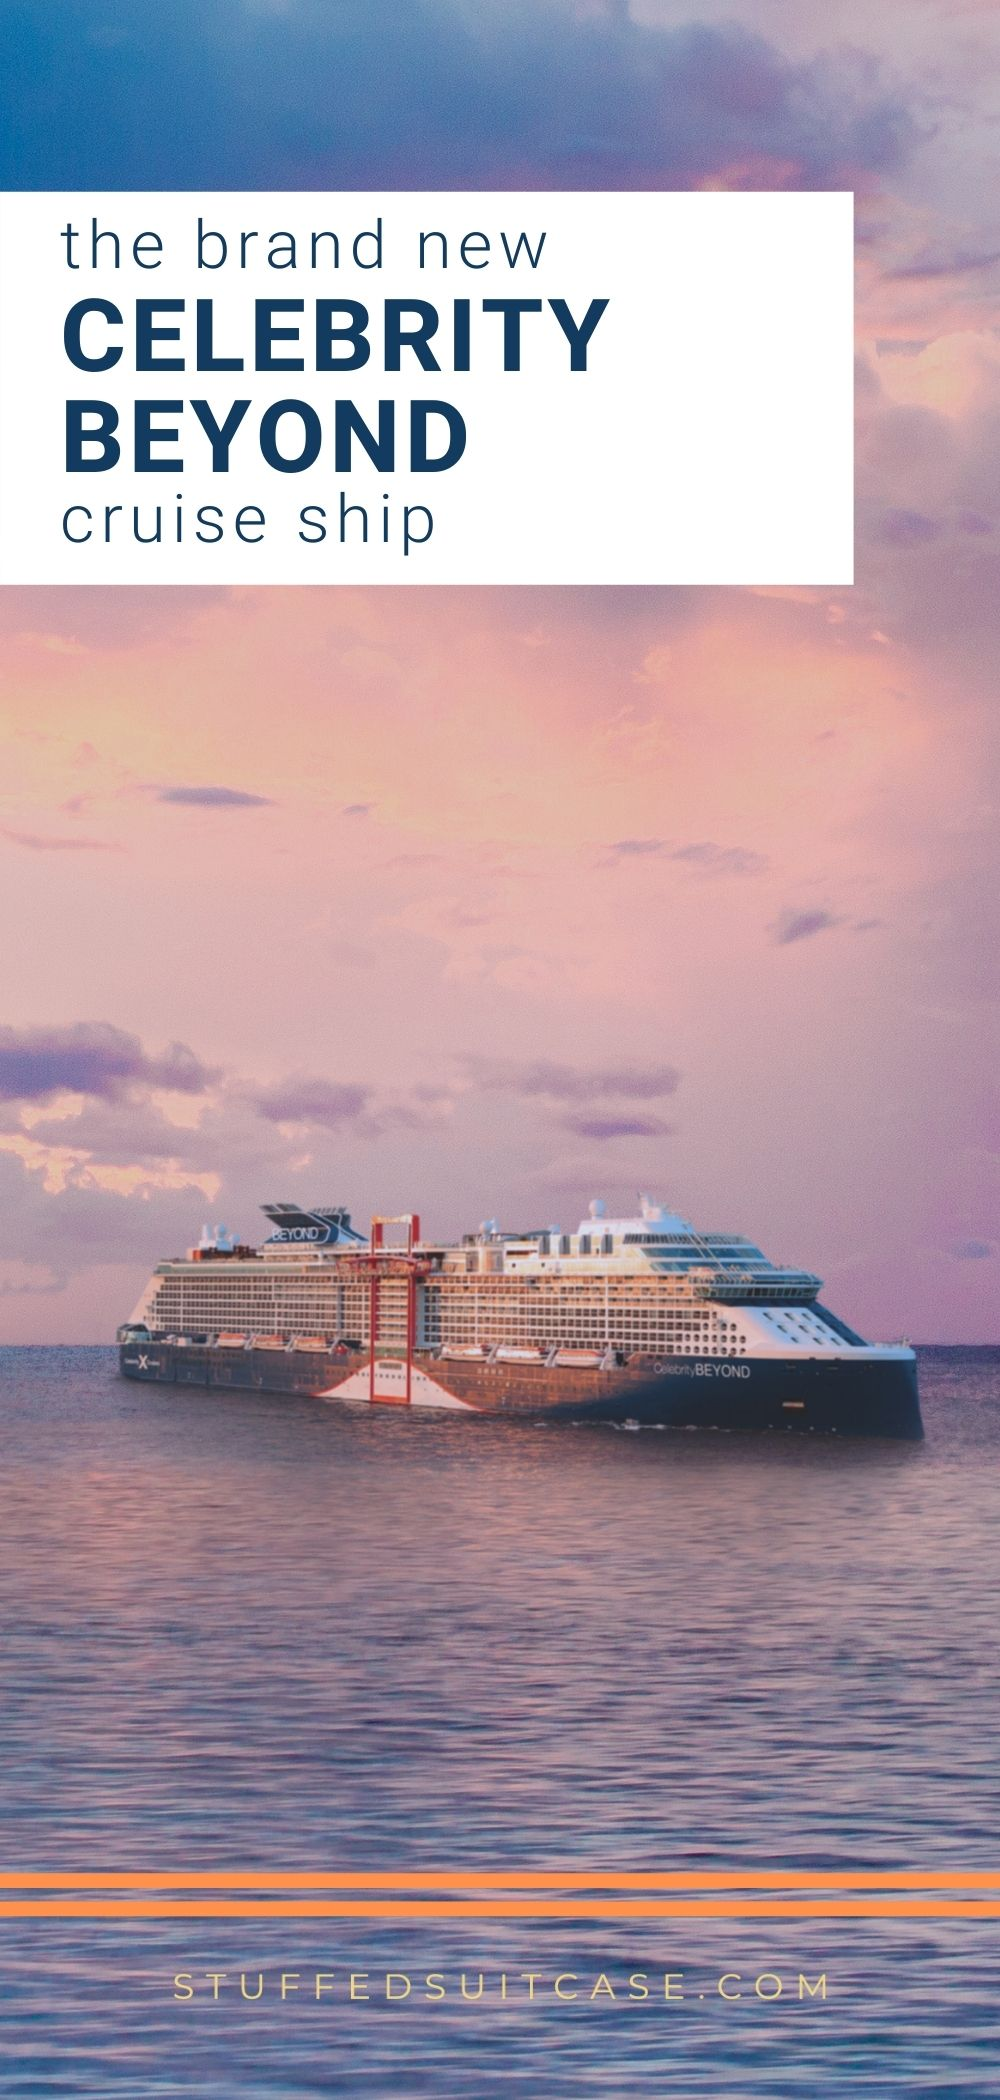 sunset view of celebrity beyond cruise ship at sea